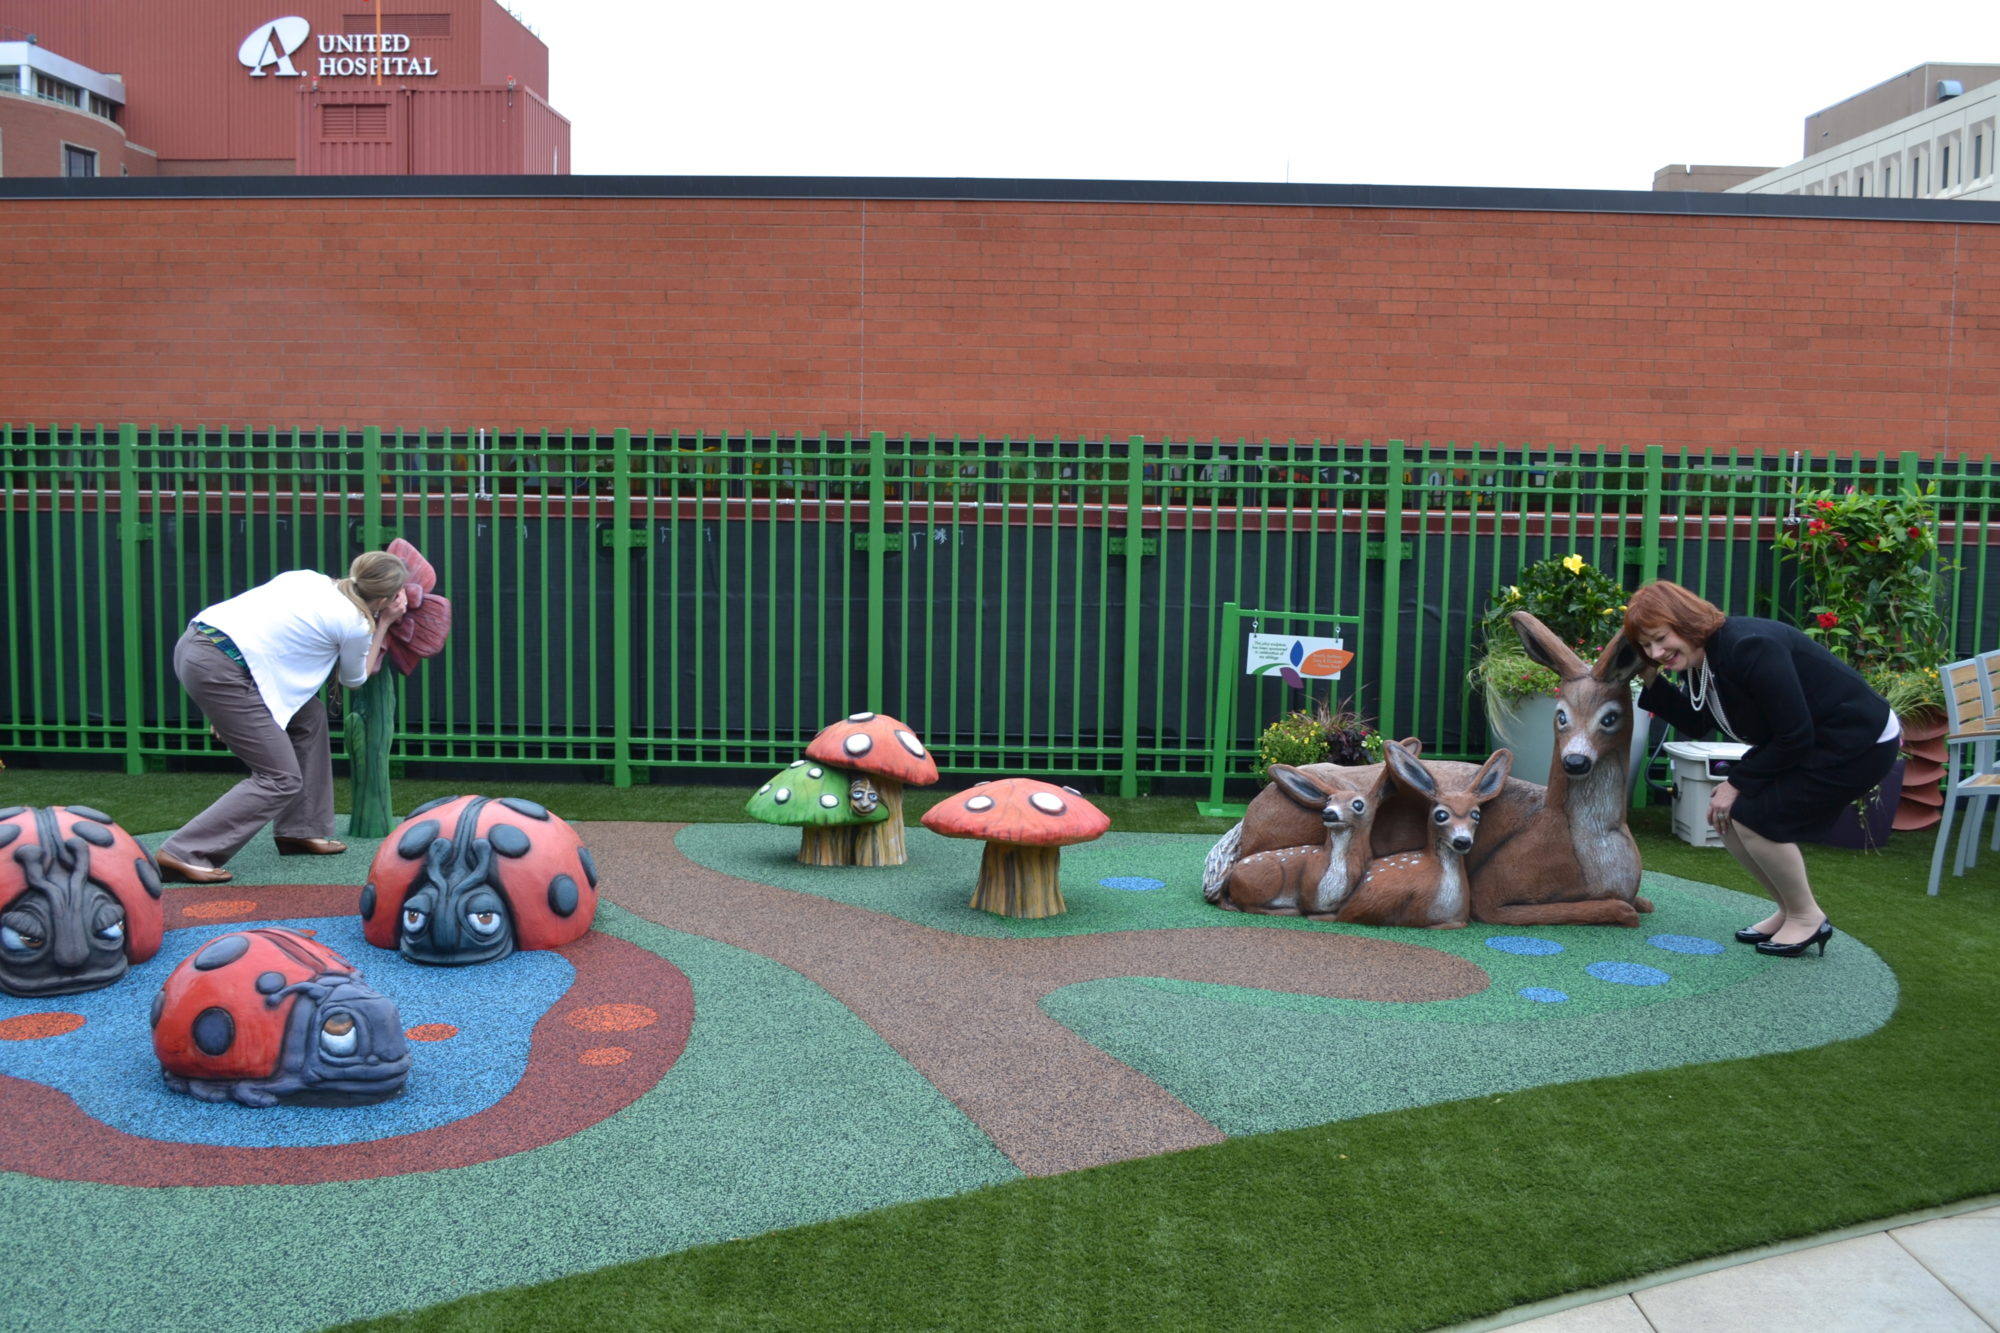 Children's Hospital St. Paul Playground